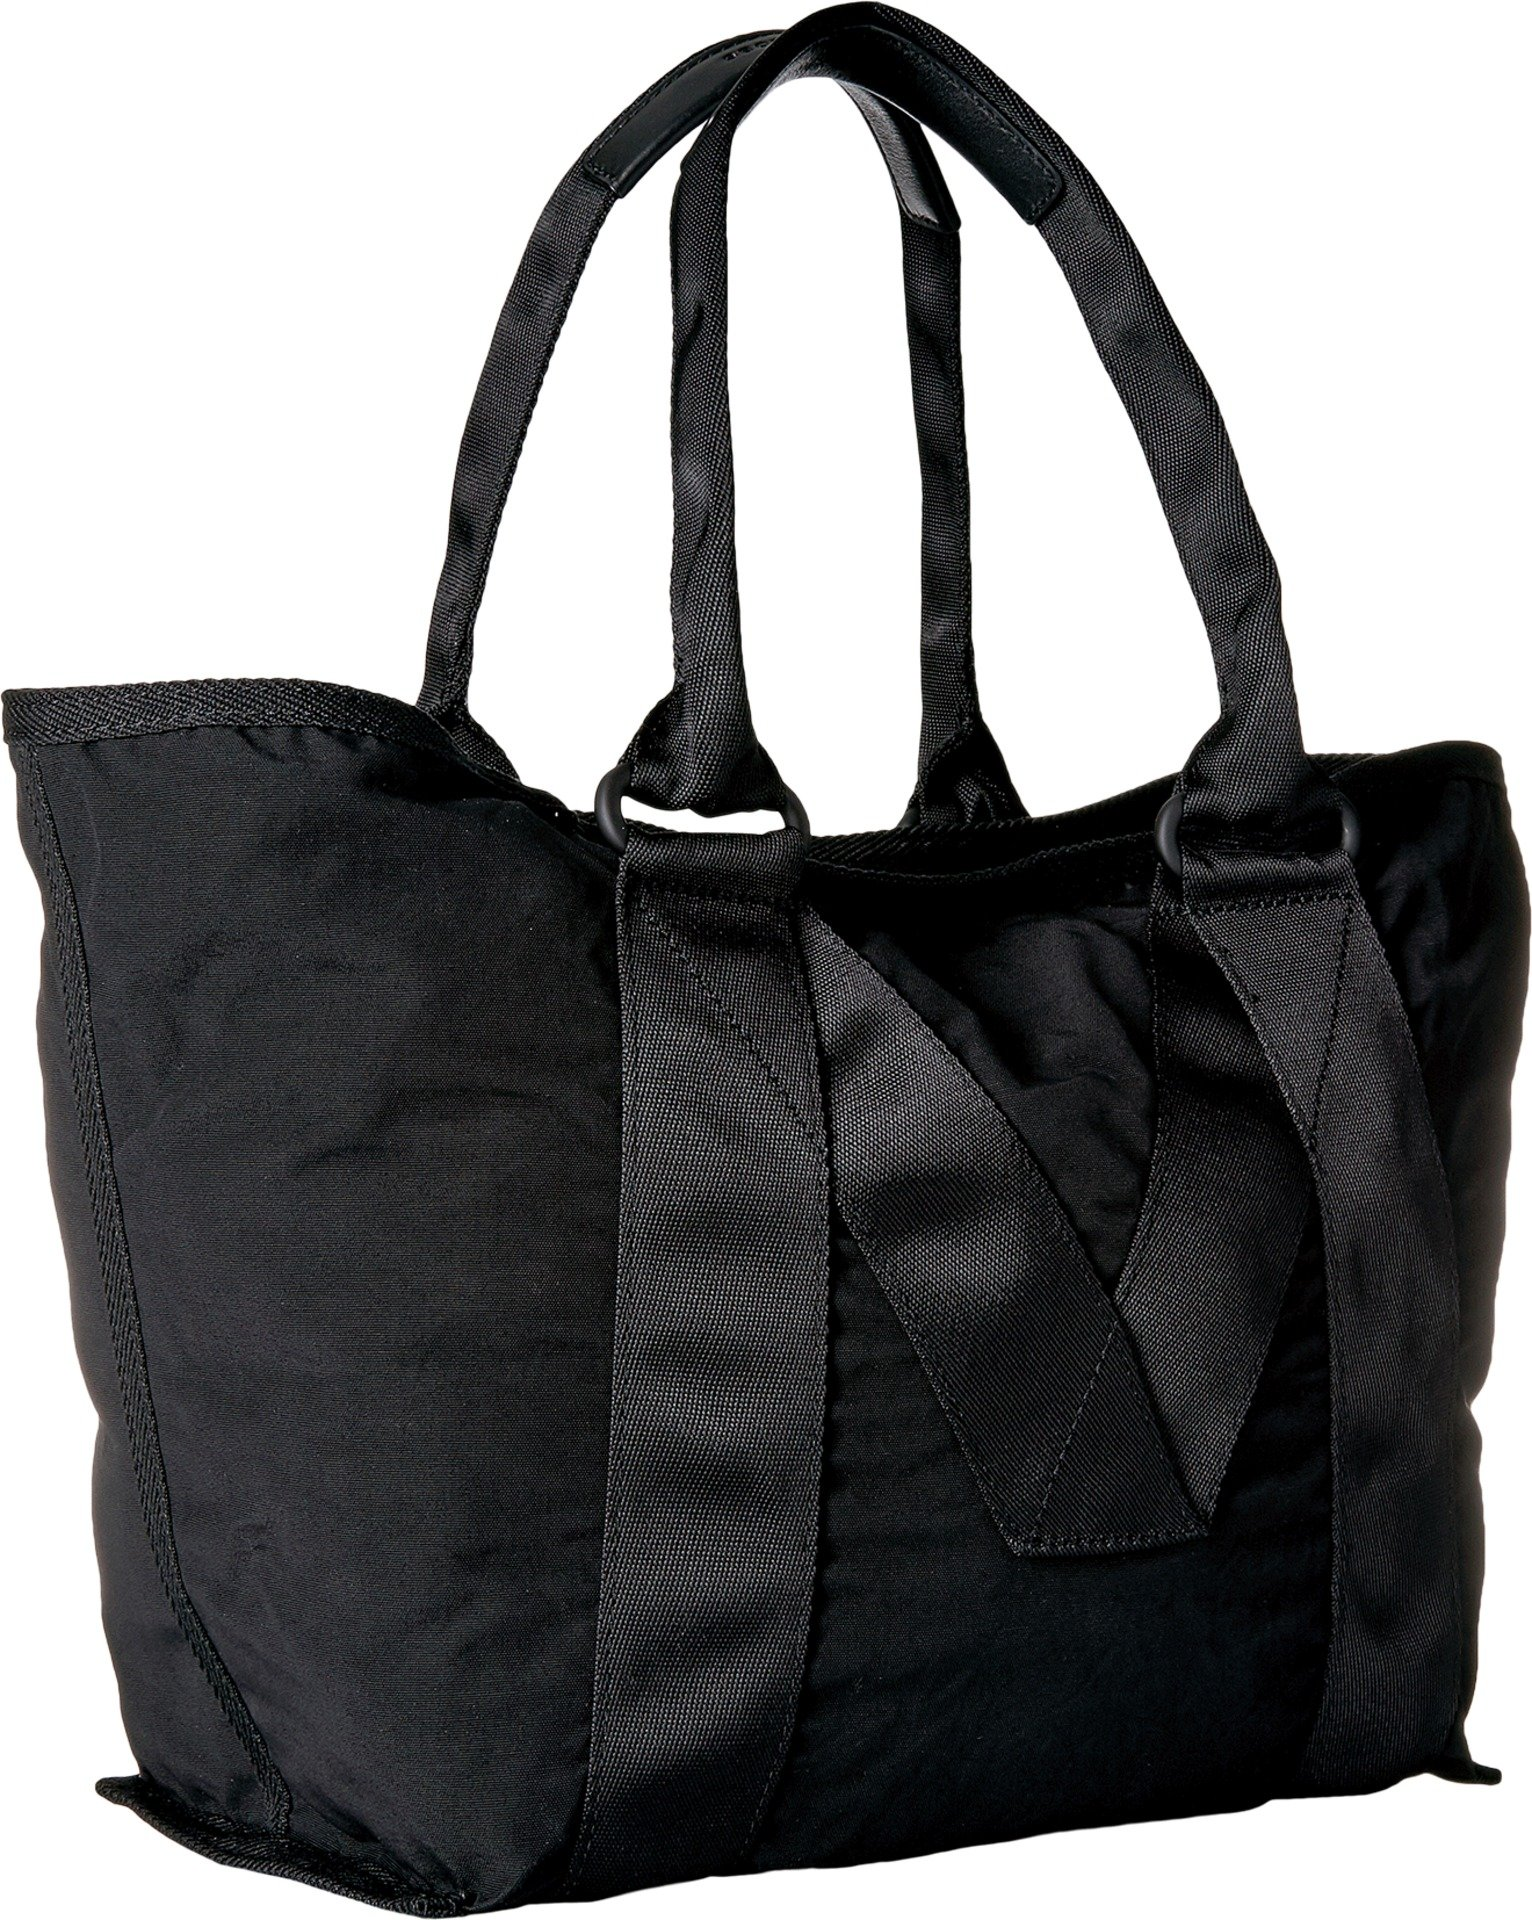 Marc Jacobs Women's New Logo Small Tote, Black by Marc Jacobs (Image #2)